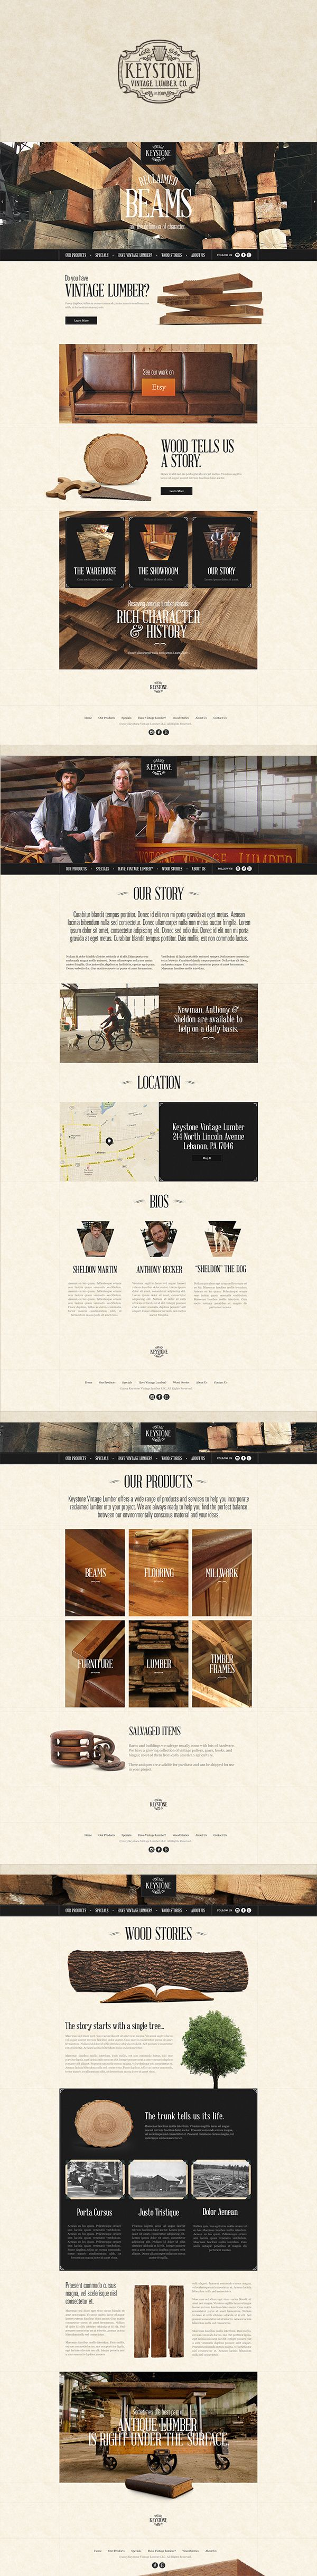 Keystone Vintage Lumber Company by Justin Freiler #website #design #digital